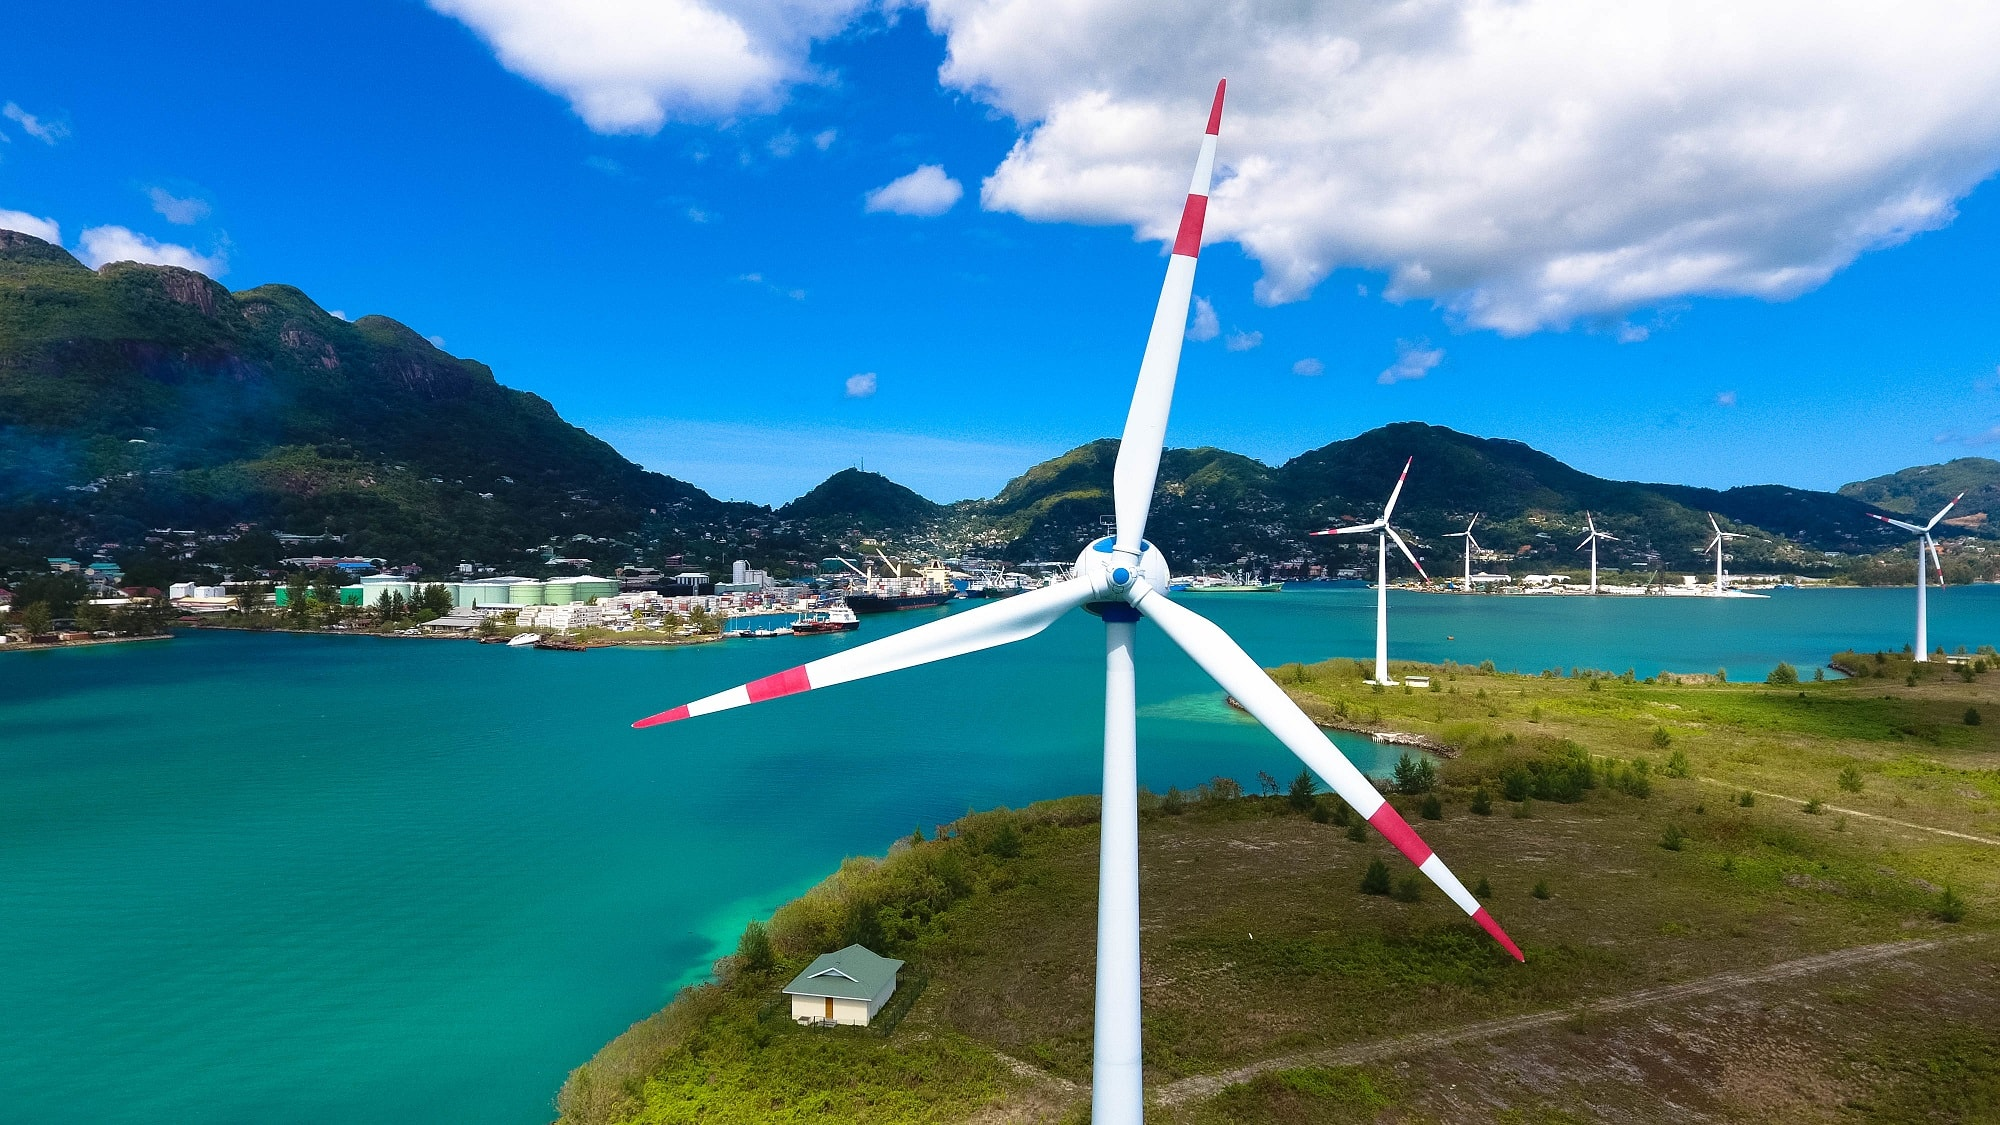 Wind turbines near the water. Connect with clean tech across the world.